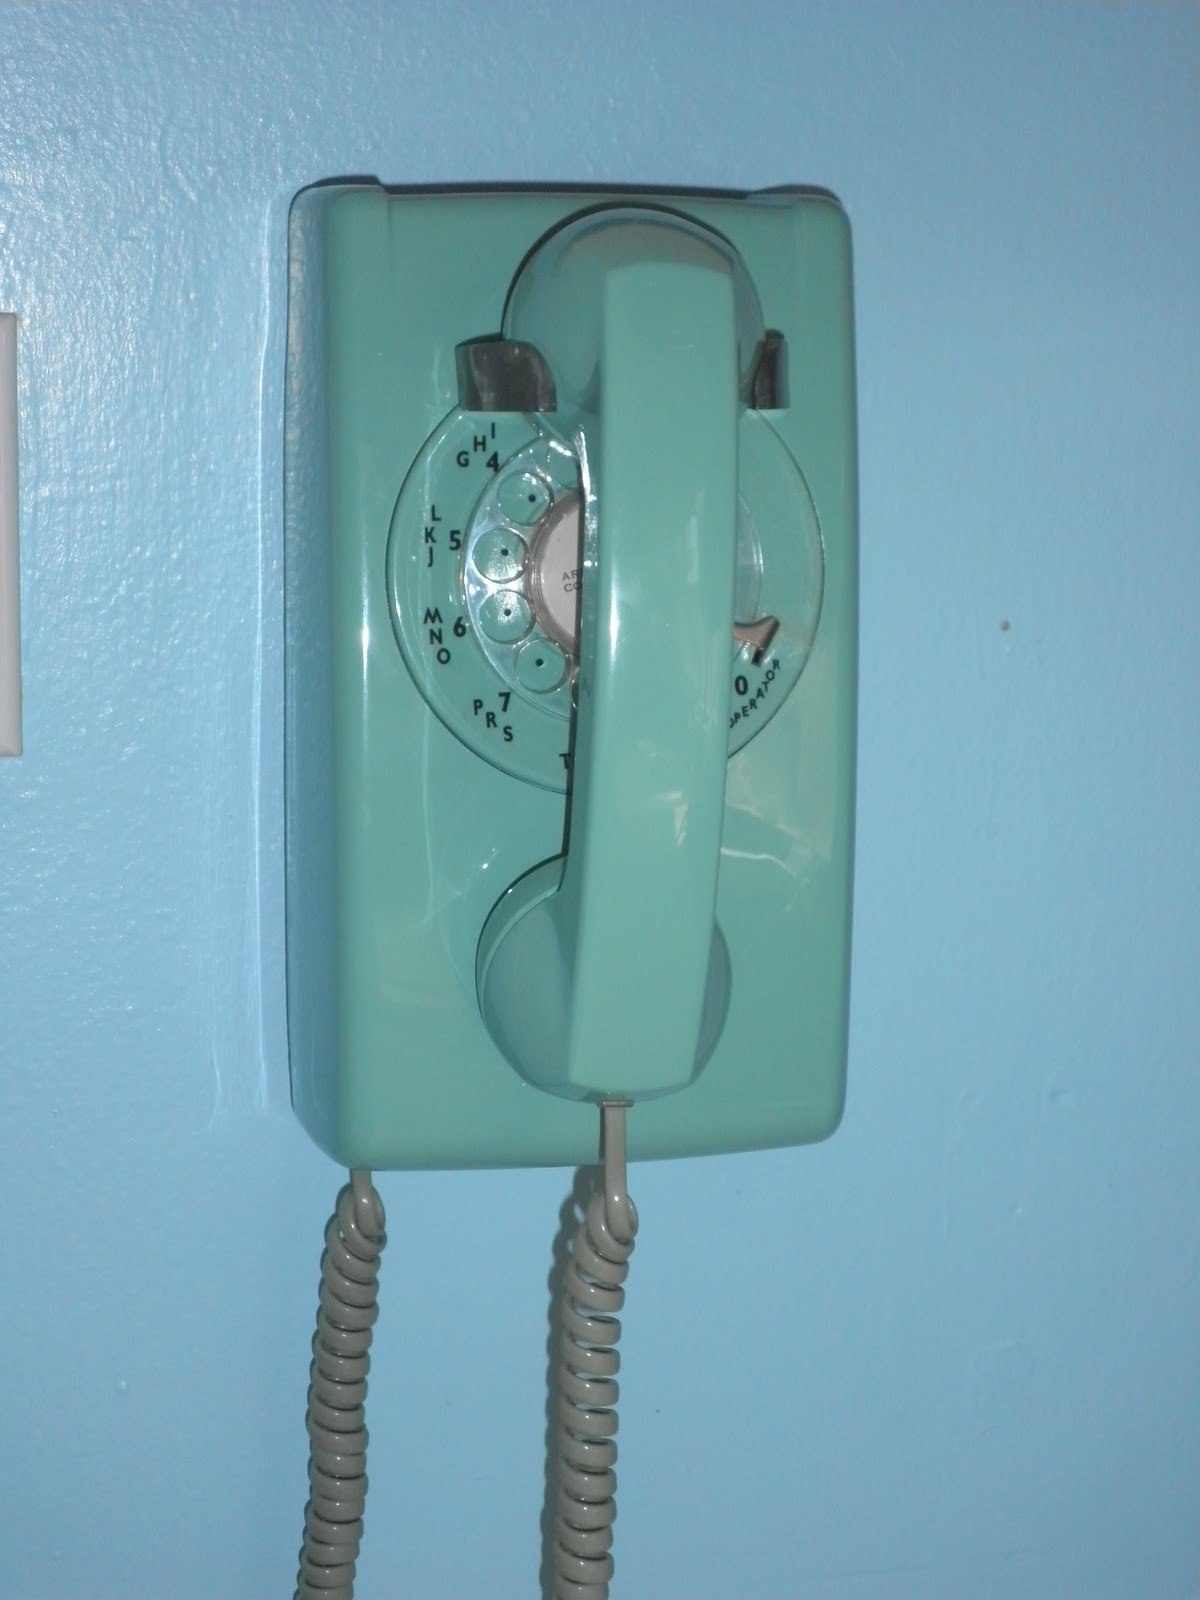 Vintage 50s 60s Retro Rotary Wall Phone Mint Seafoam Just Peachy Darling